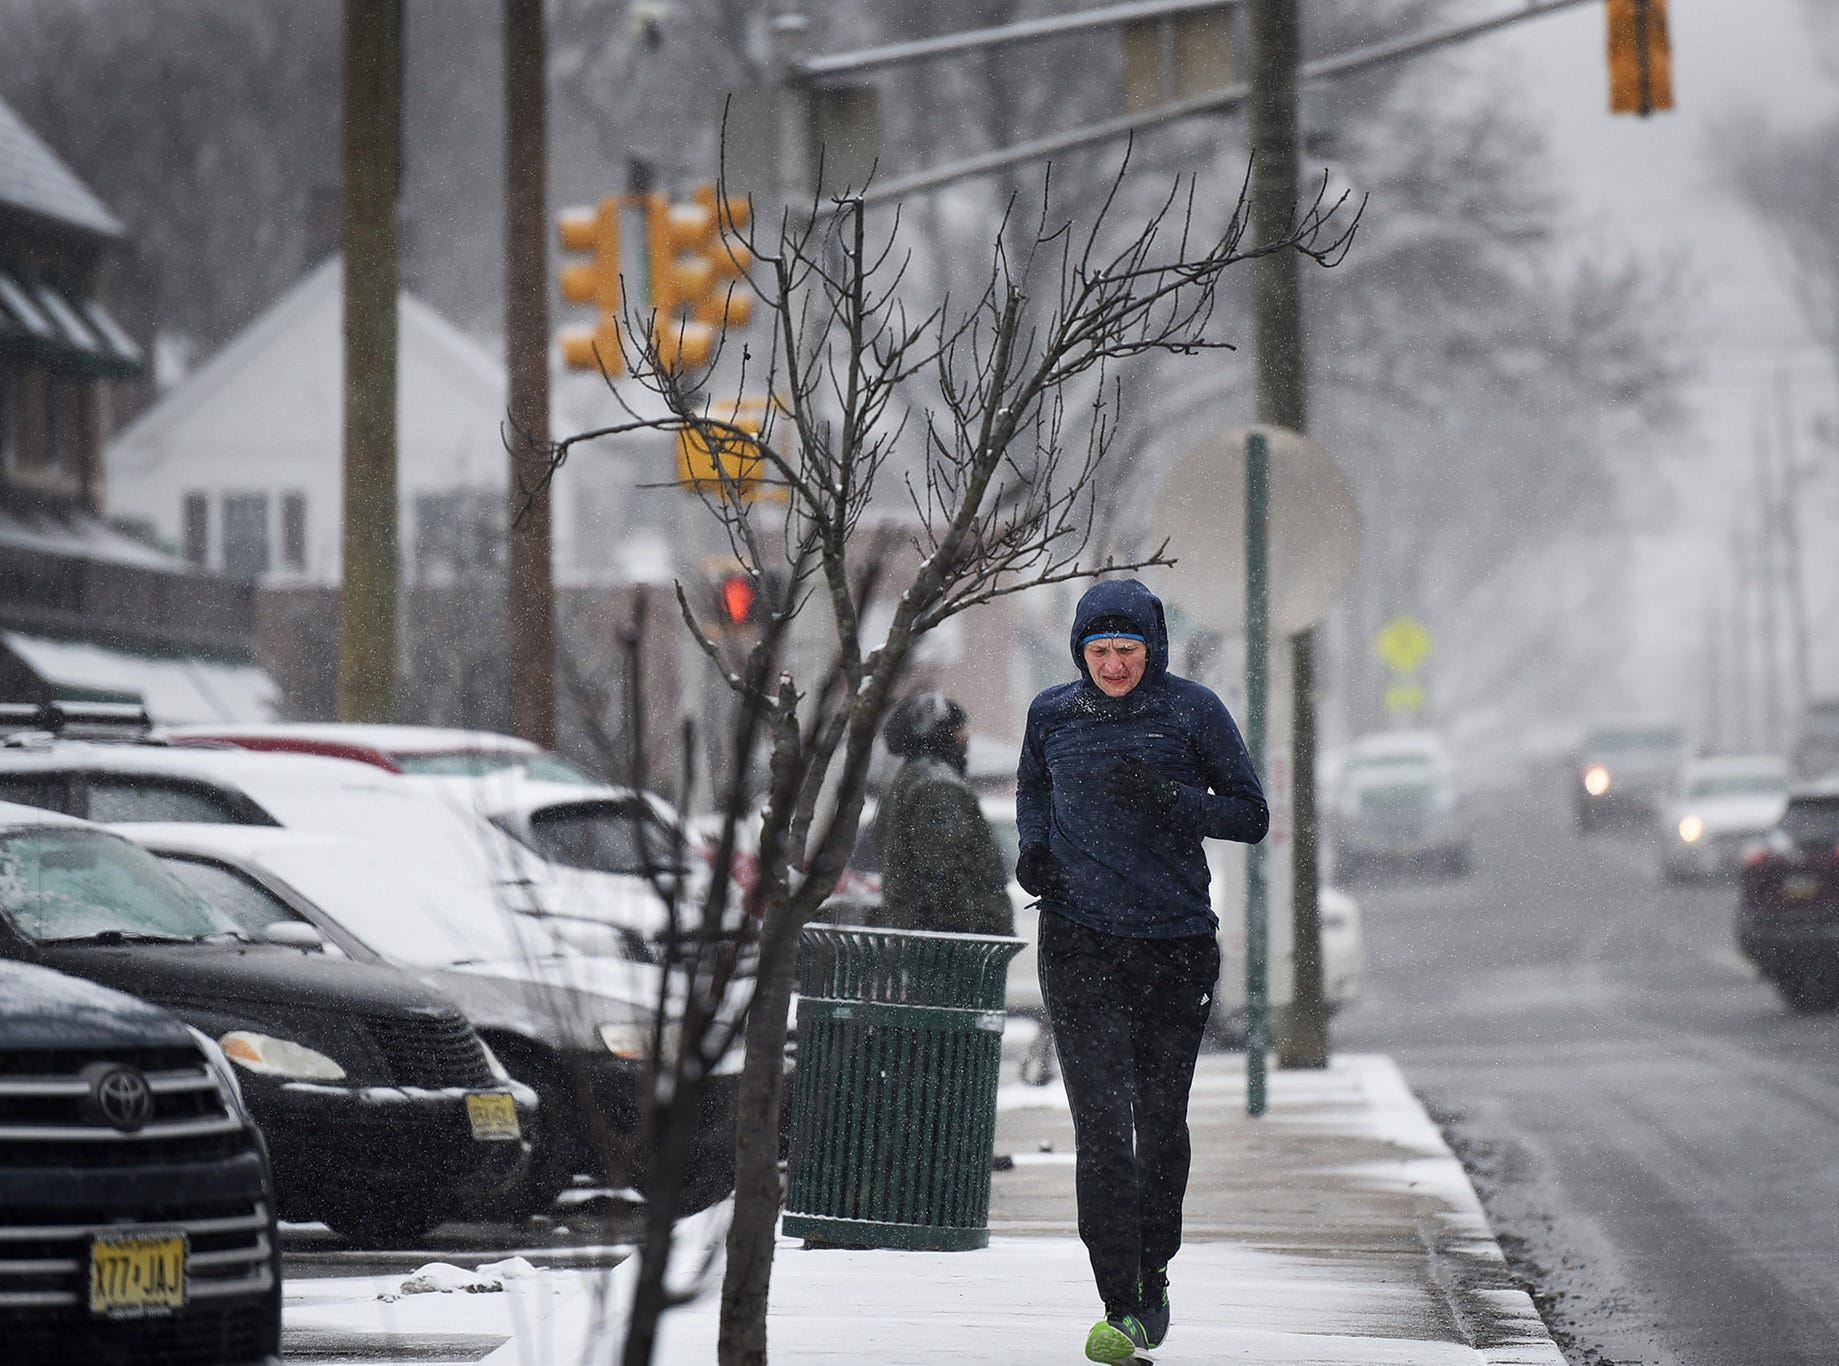 A man jogs along Fair Lawn Avenue as the snow falls in Fair Lawn on 02/20/19.